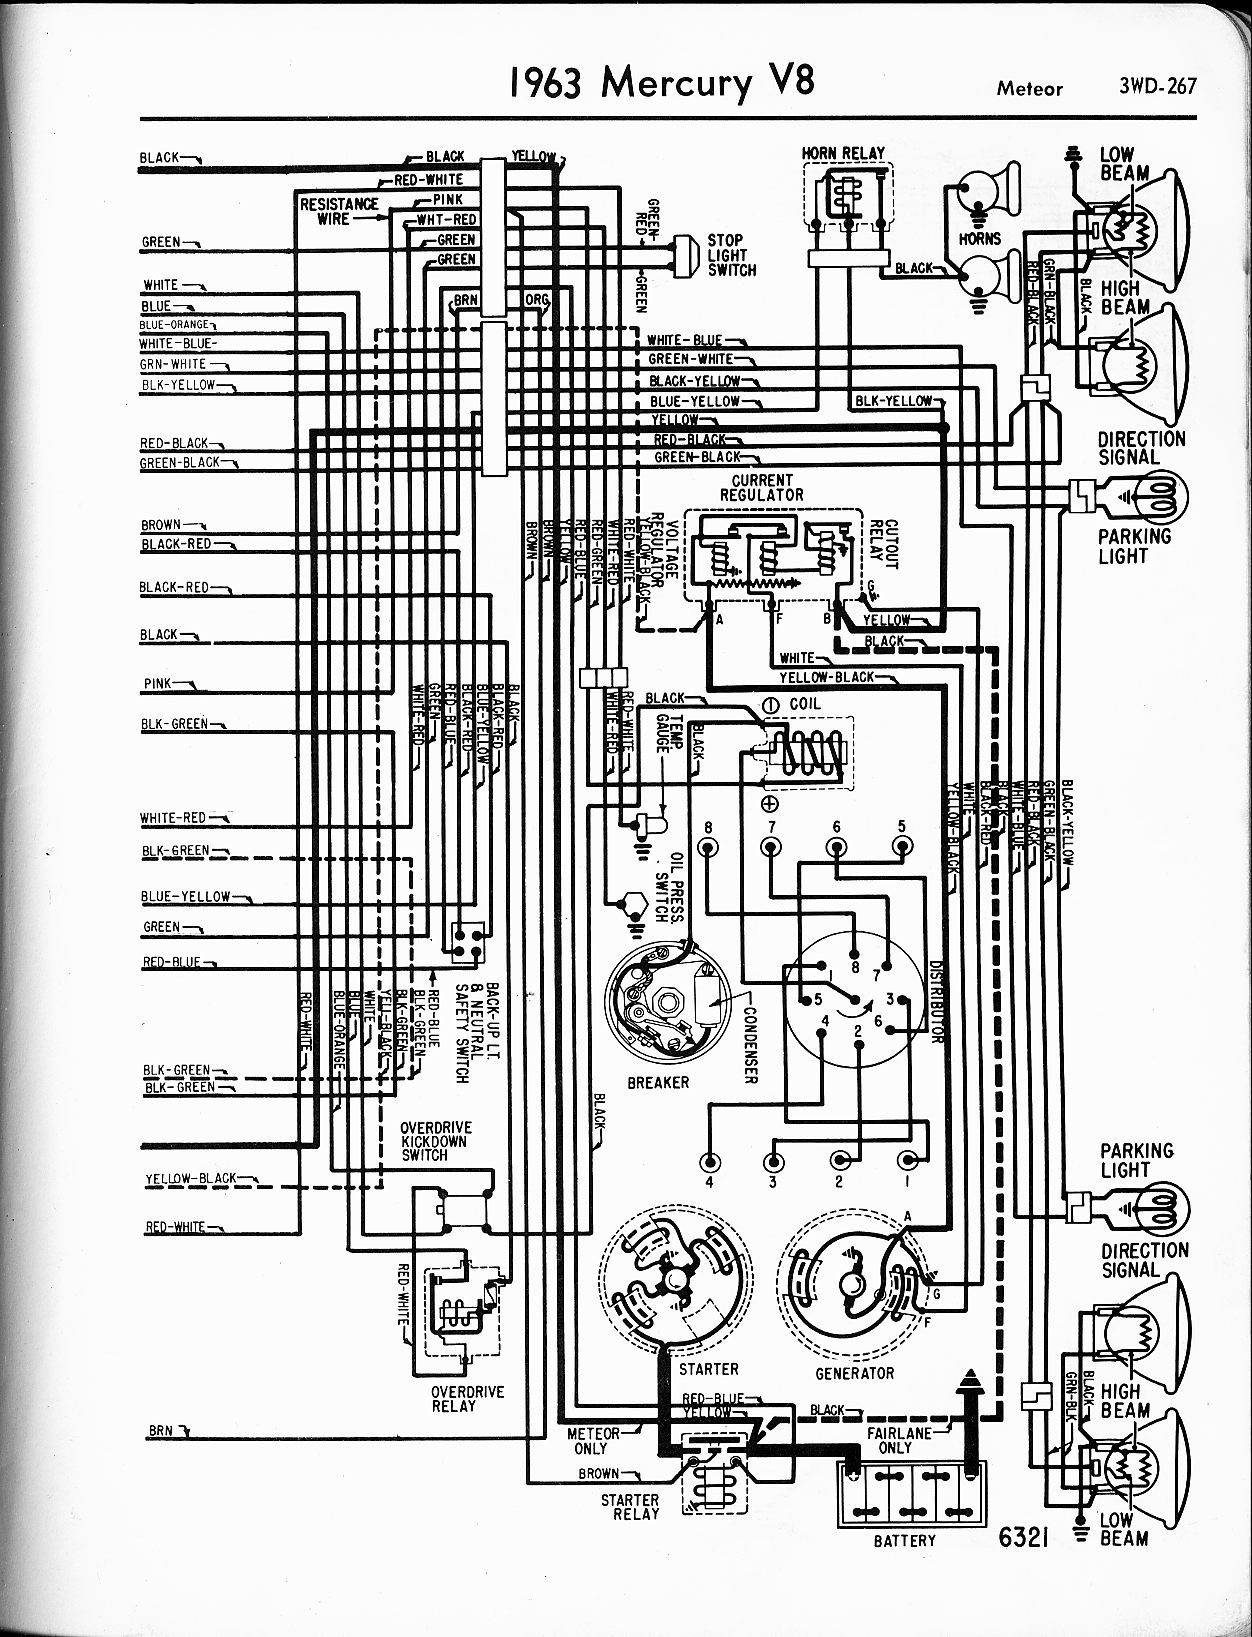 55 Chevy Drawing At Free For Personal Use Painless Wiring Diagrams 1950 3100 1252x1637 Mercury